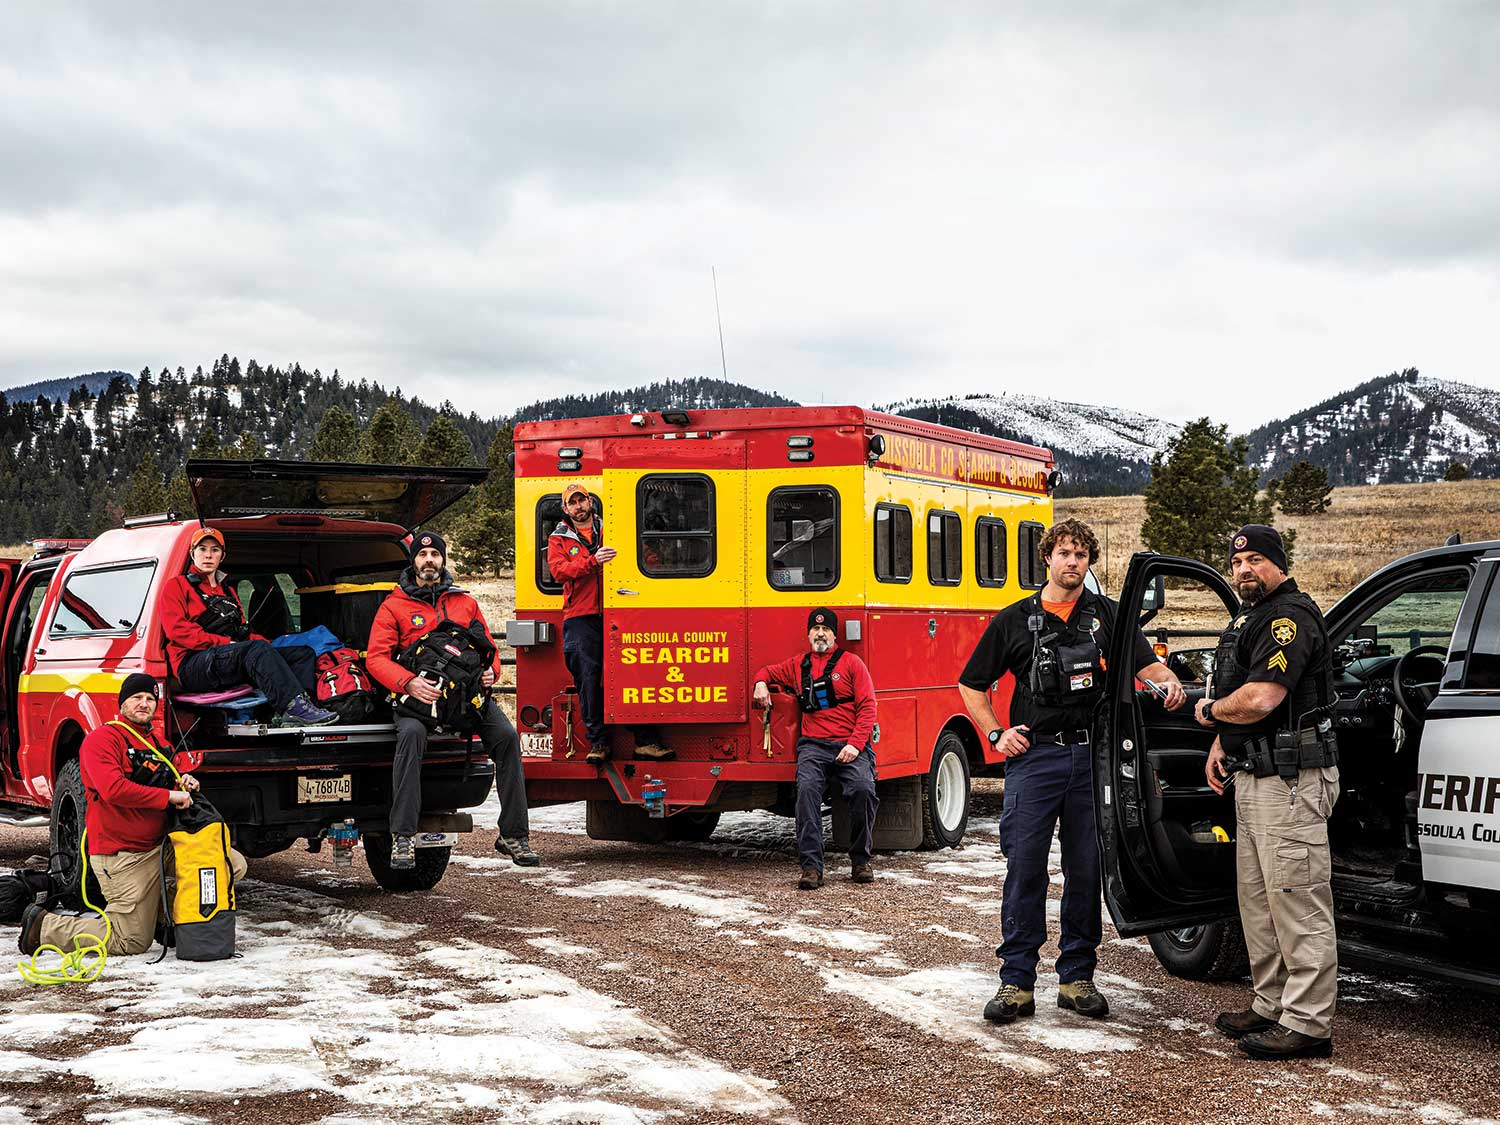 A search and rescue team preparing for training.